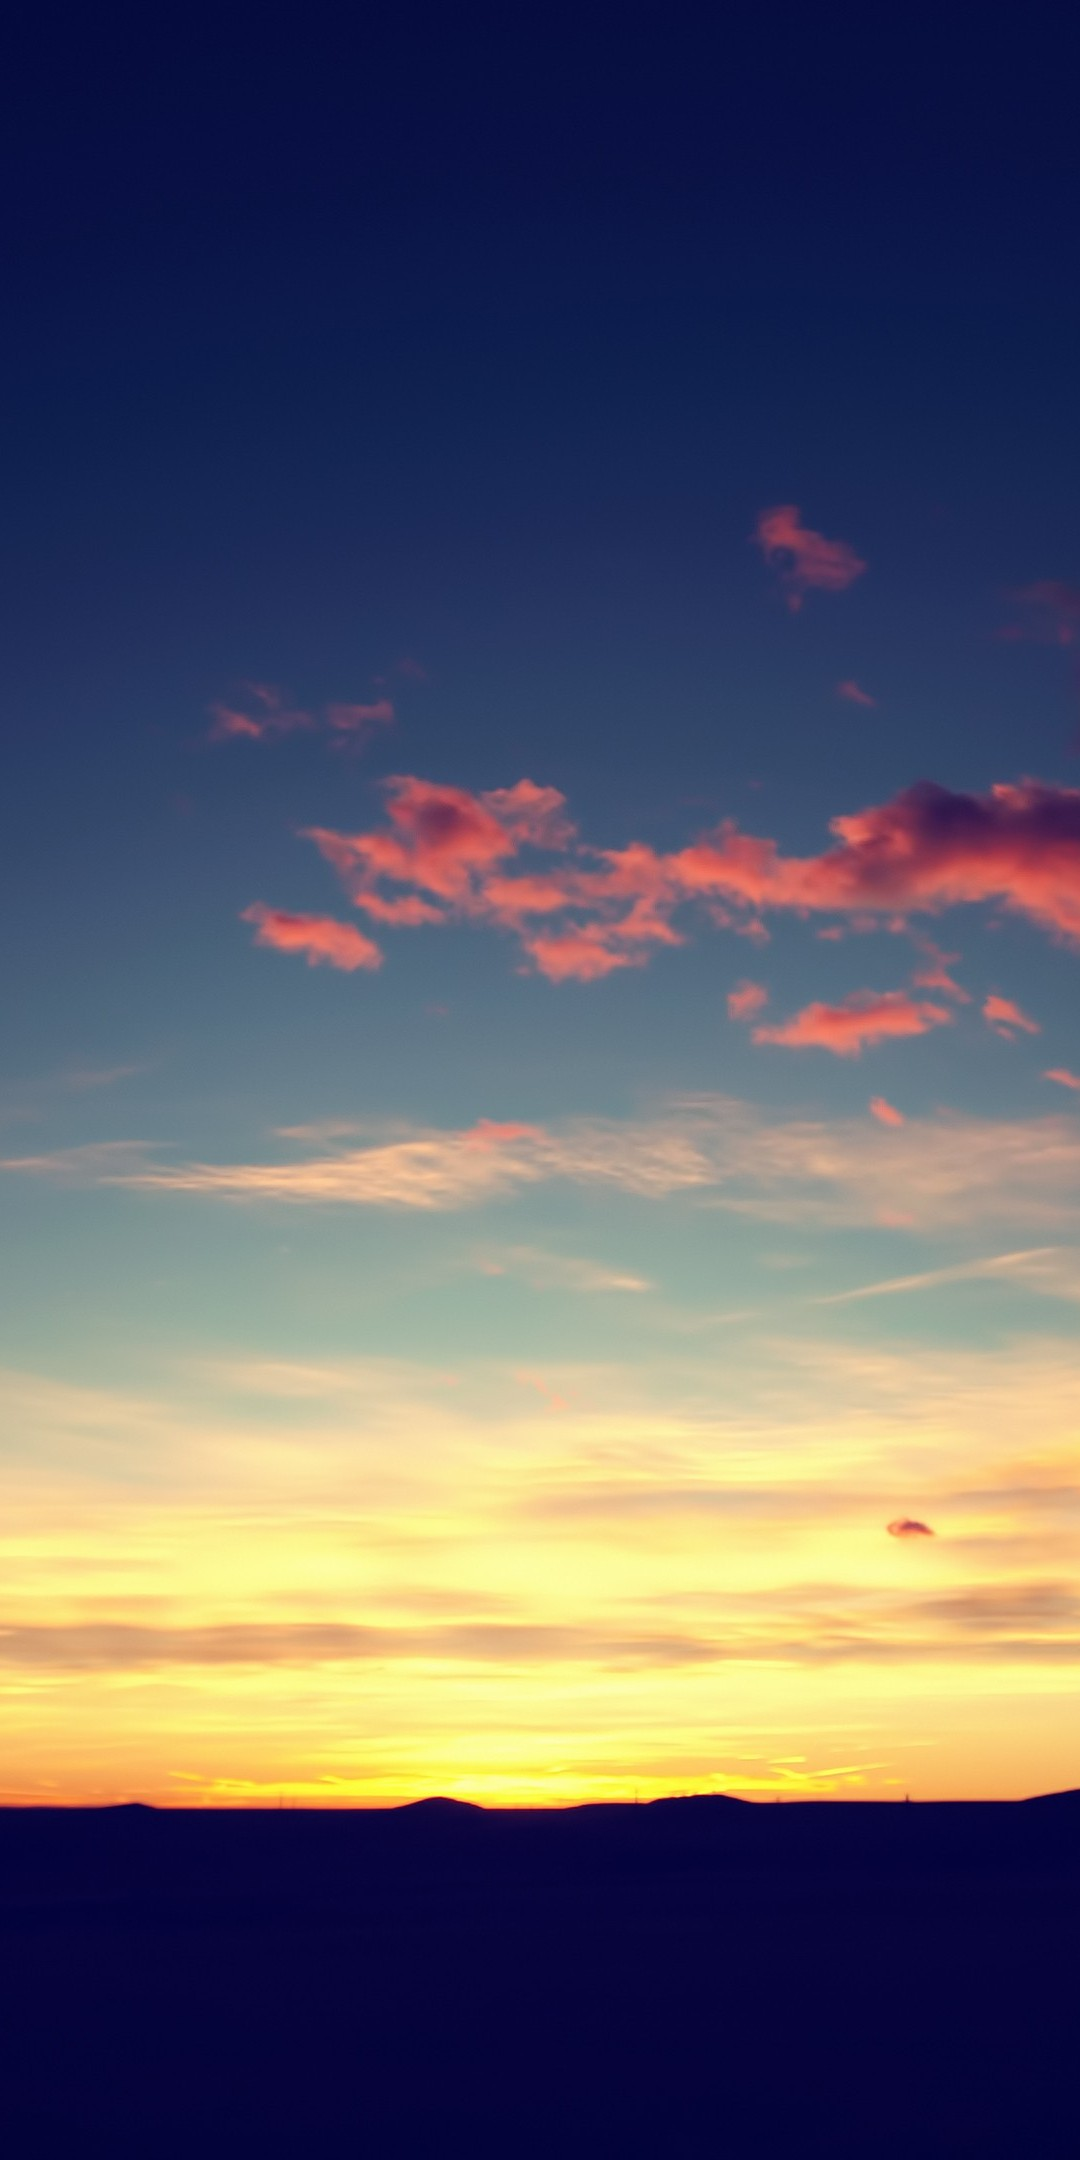 Hd wallpaper oppo - Sunset Sky Ultra Hd Wallpaper 1080x2160 380x760